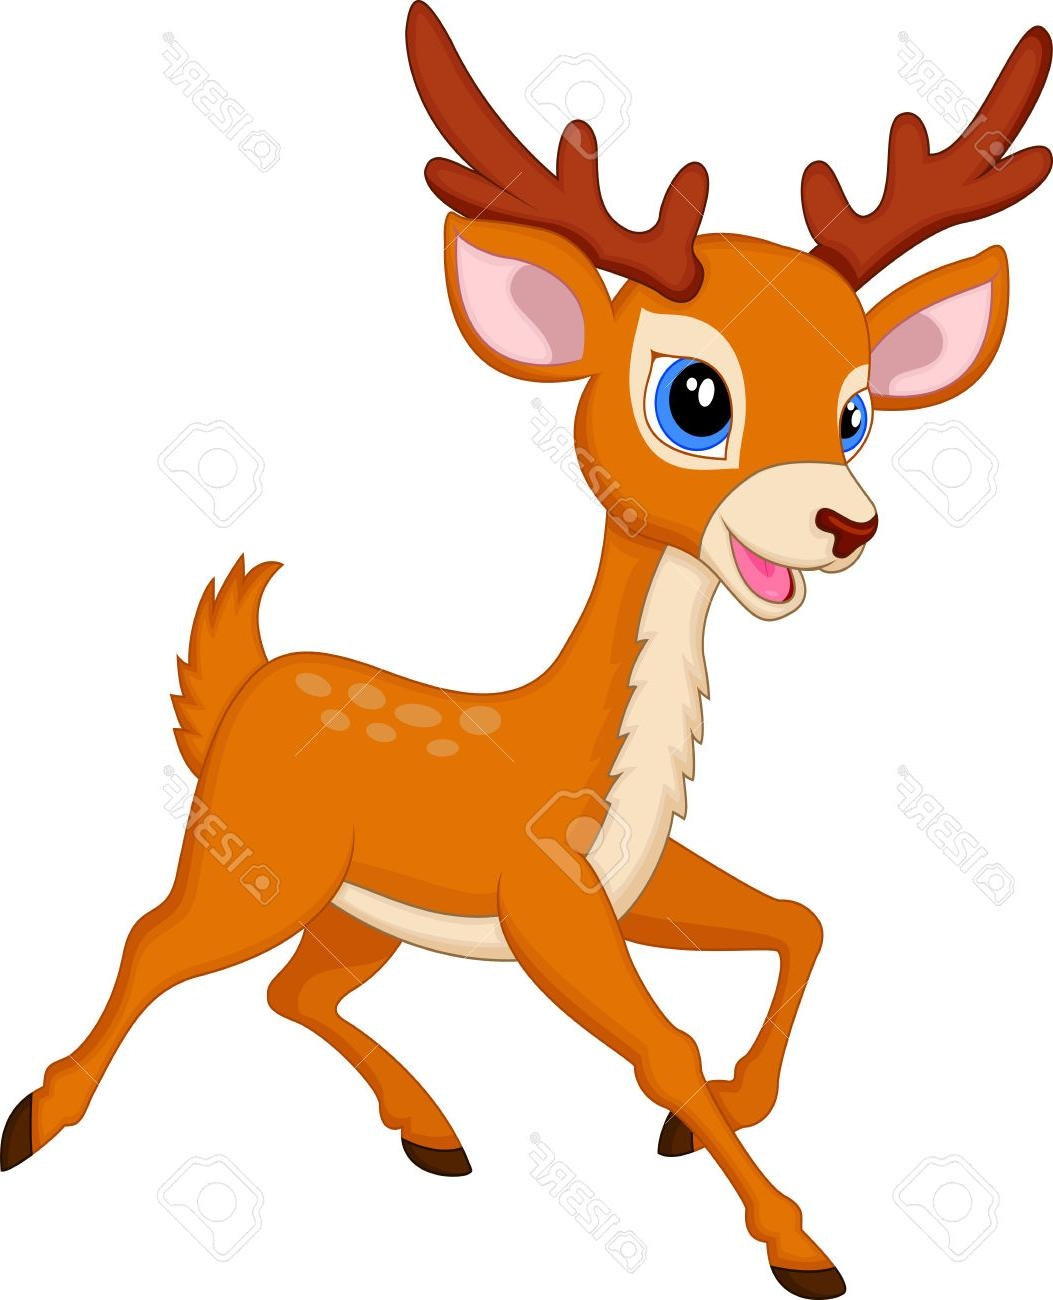 Deer clipart Awesome Top 10 Cute Deer Clipart Clip Art.